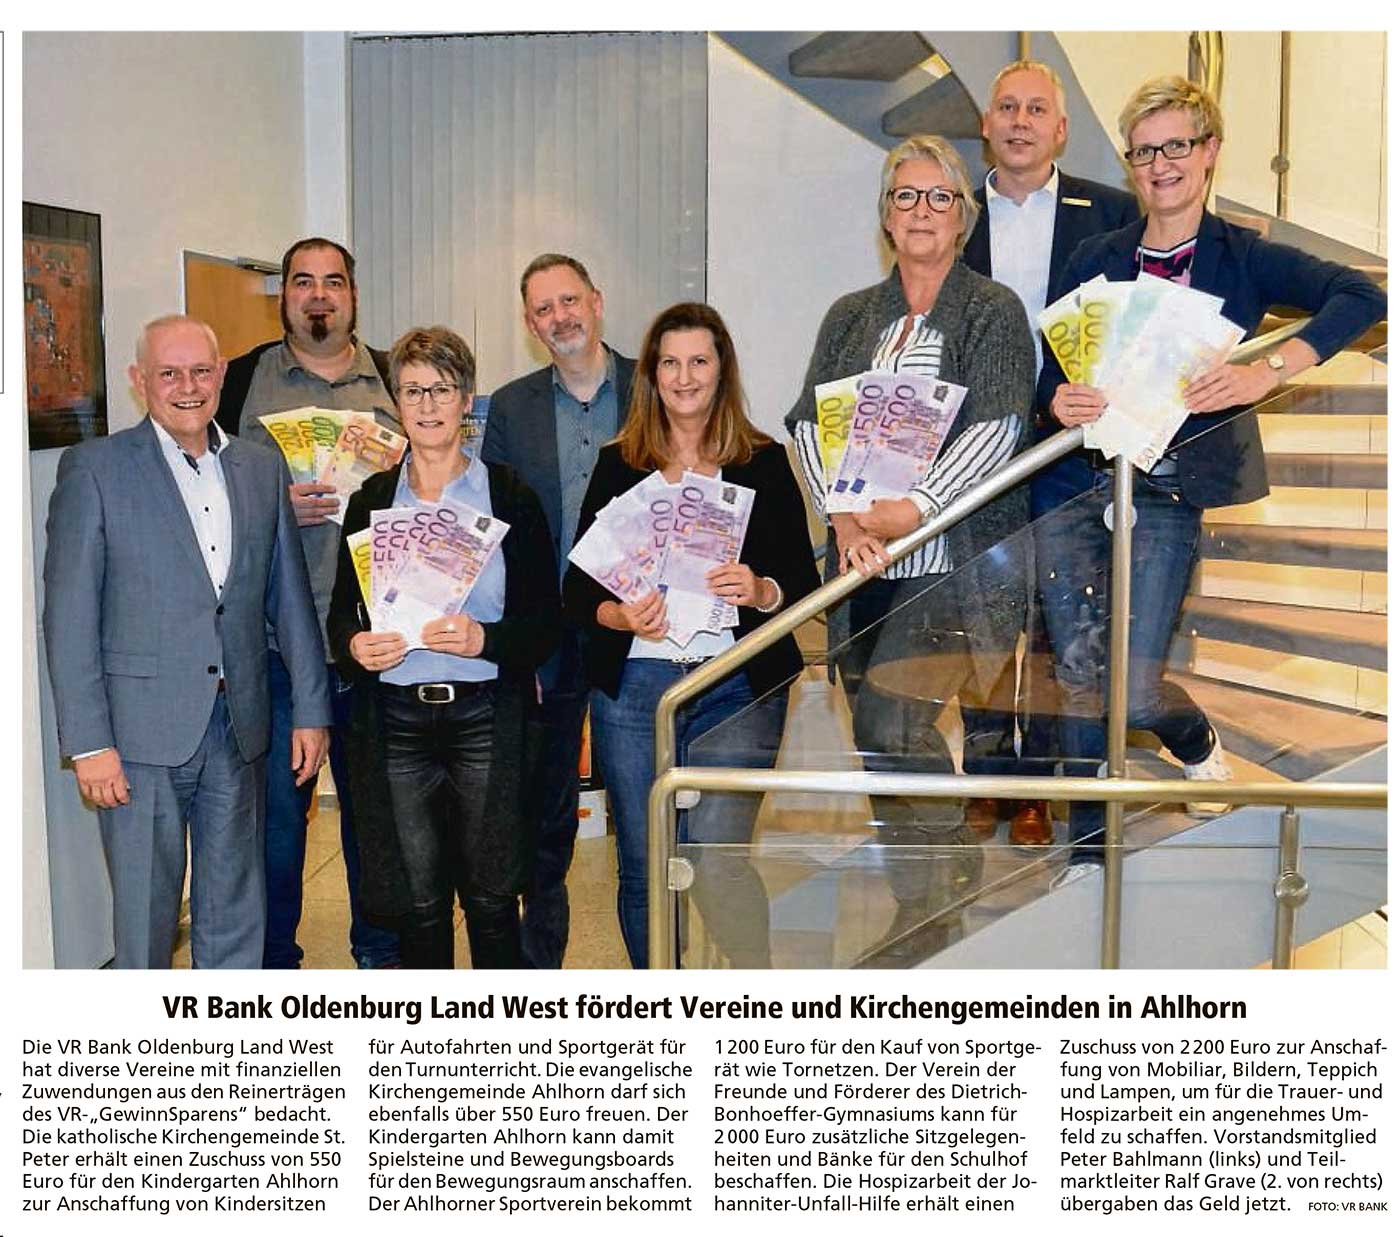 VR Bank Oldenburg Land West fördert Vereine und Kirchengemeinde in AhlhornDie VR Bank Oldenburg Land West hat diverse...Artikel vom 21.12.2019 (WZ)